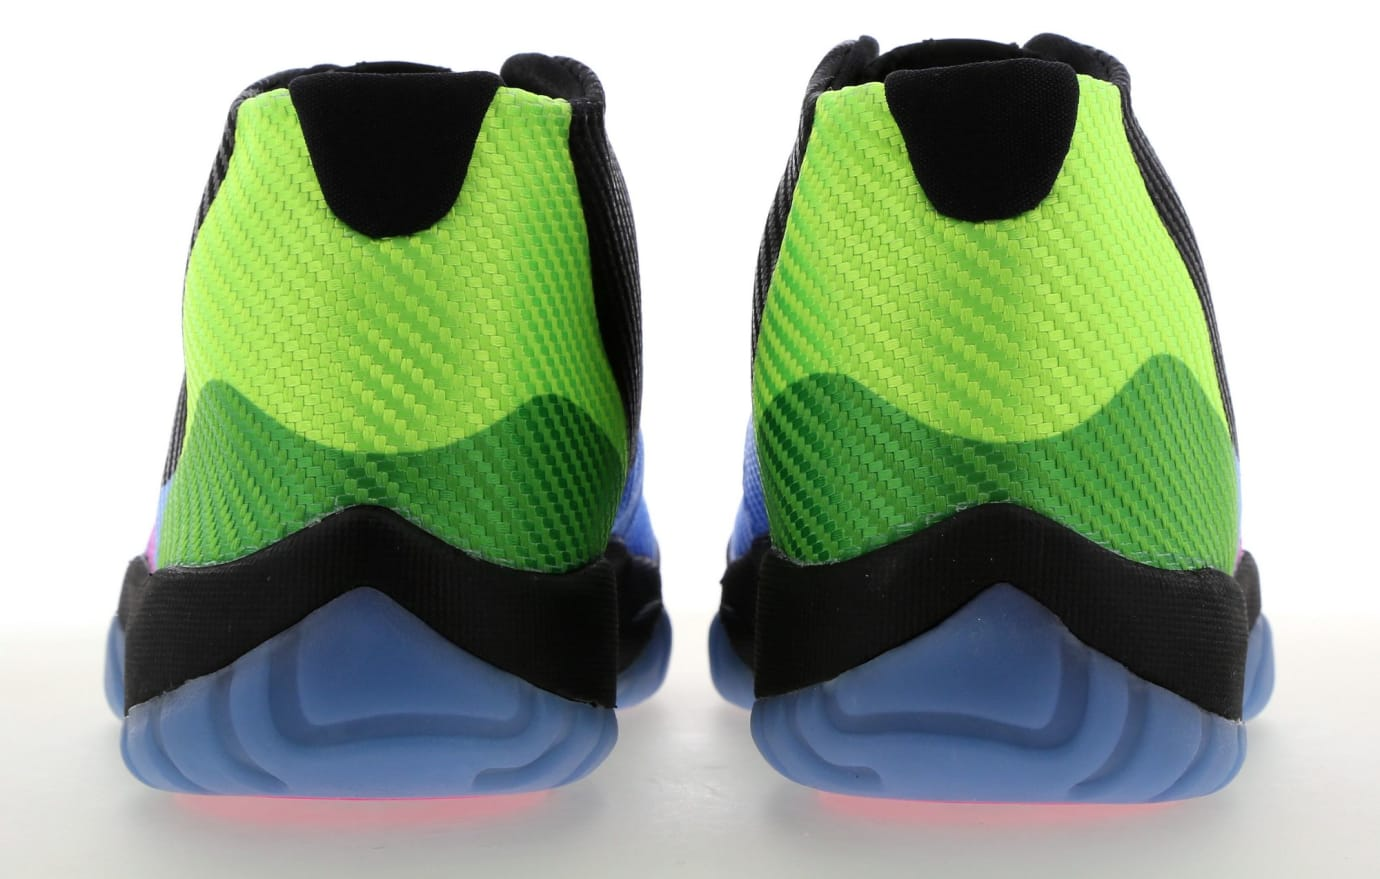 Jordan Future 'Quai 54' AT9191-001 (Heel)